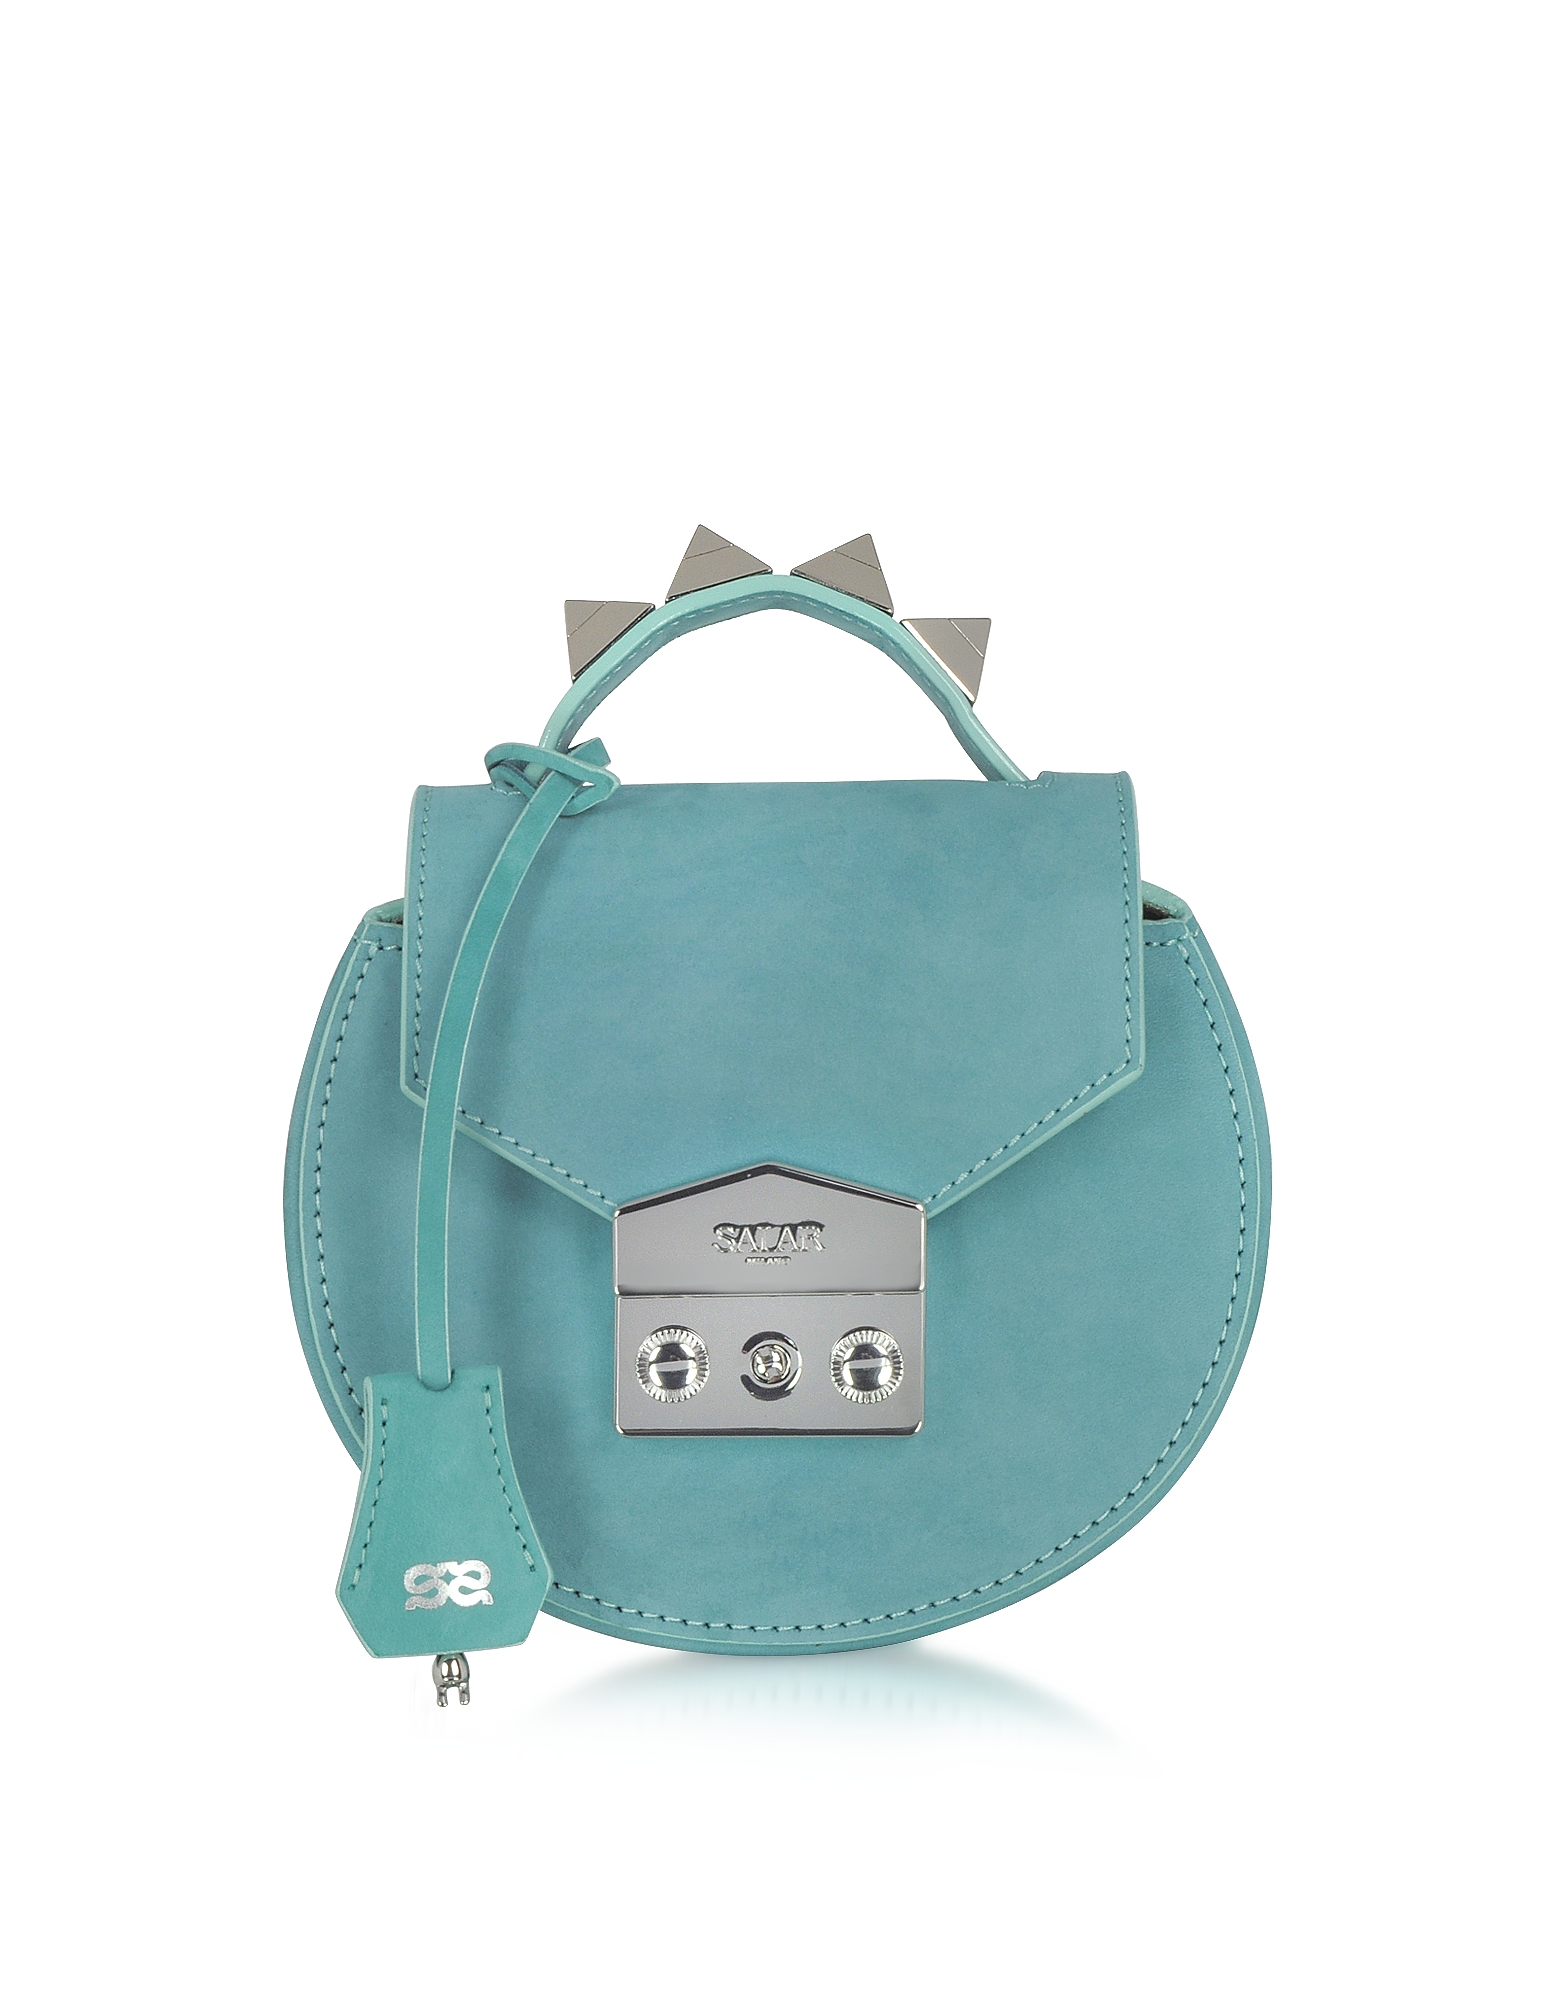 Salar Handbags, Carol Sea Green Nubuck Mini Shoulder Bag